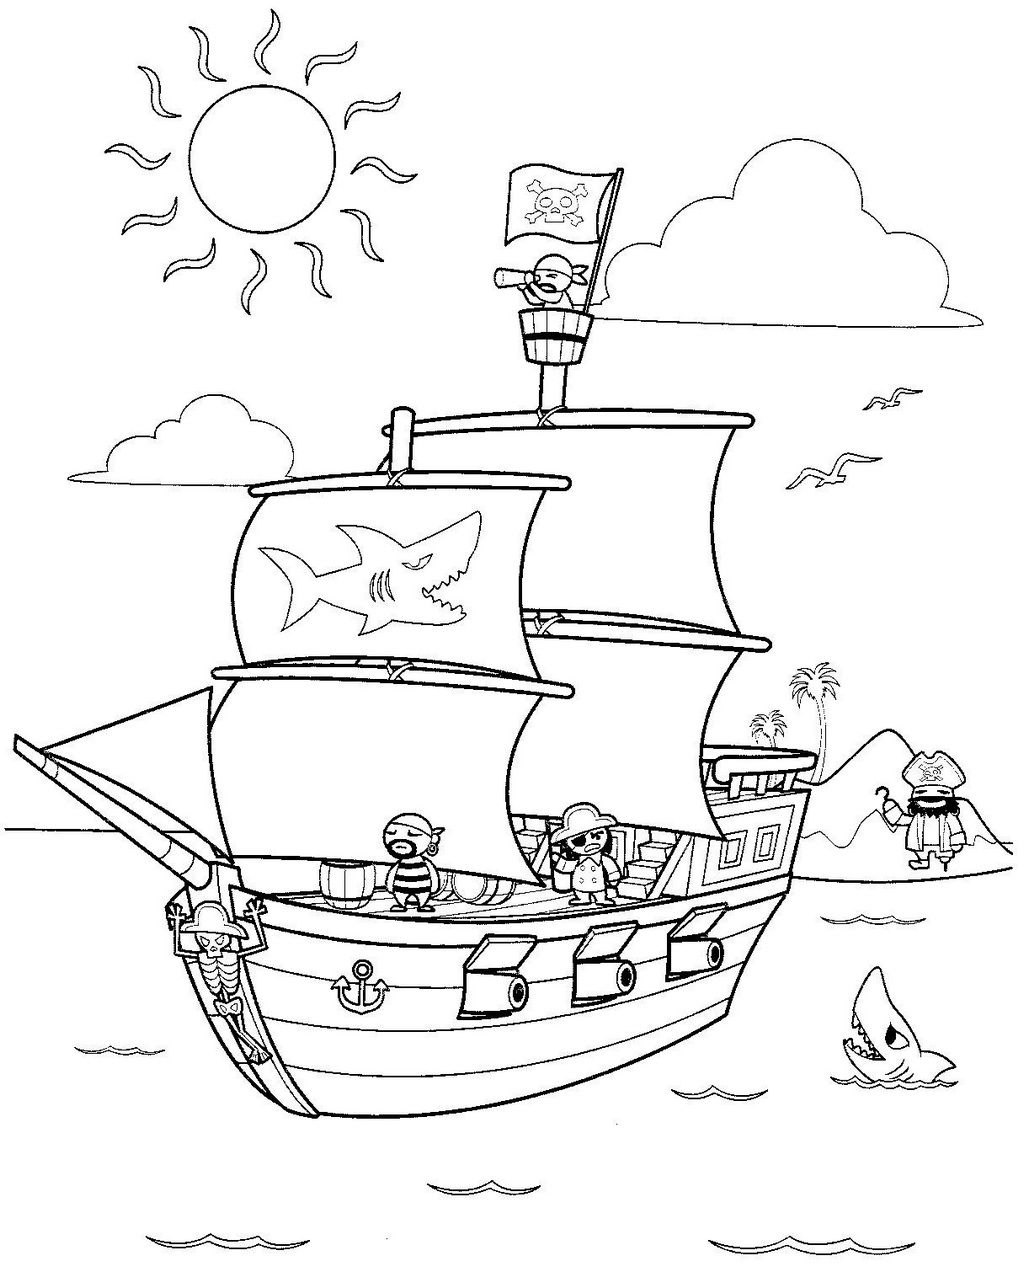 Pirate Ship Themed Coloring Pages for Kids